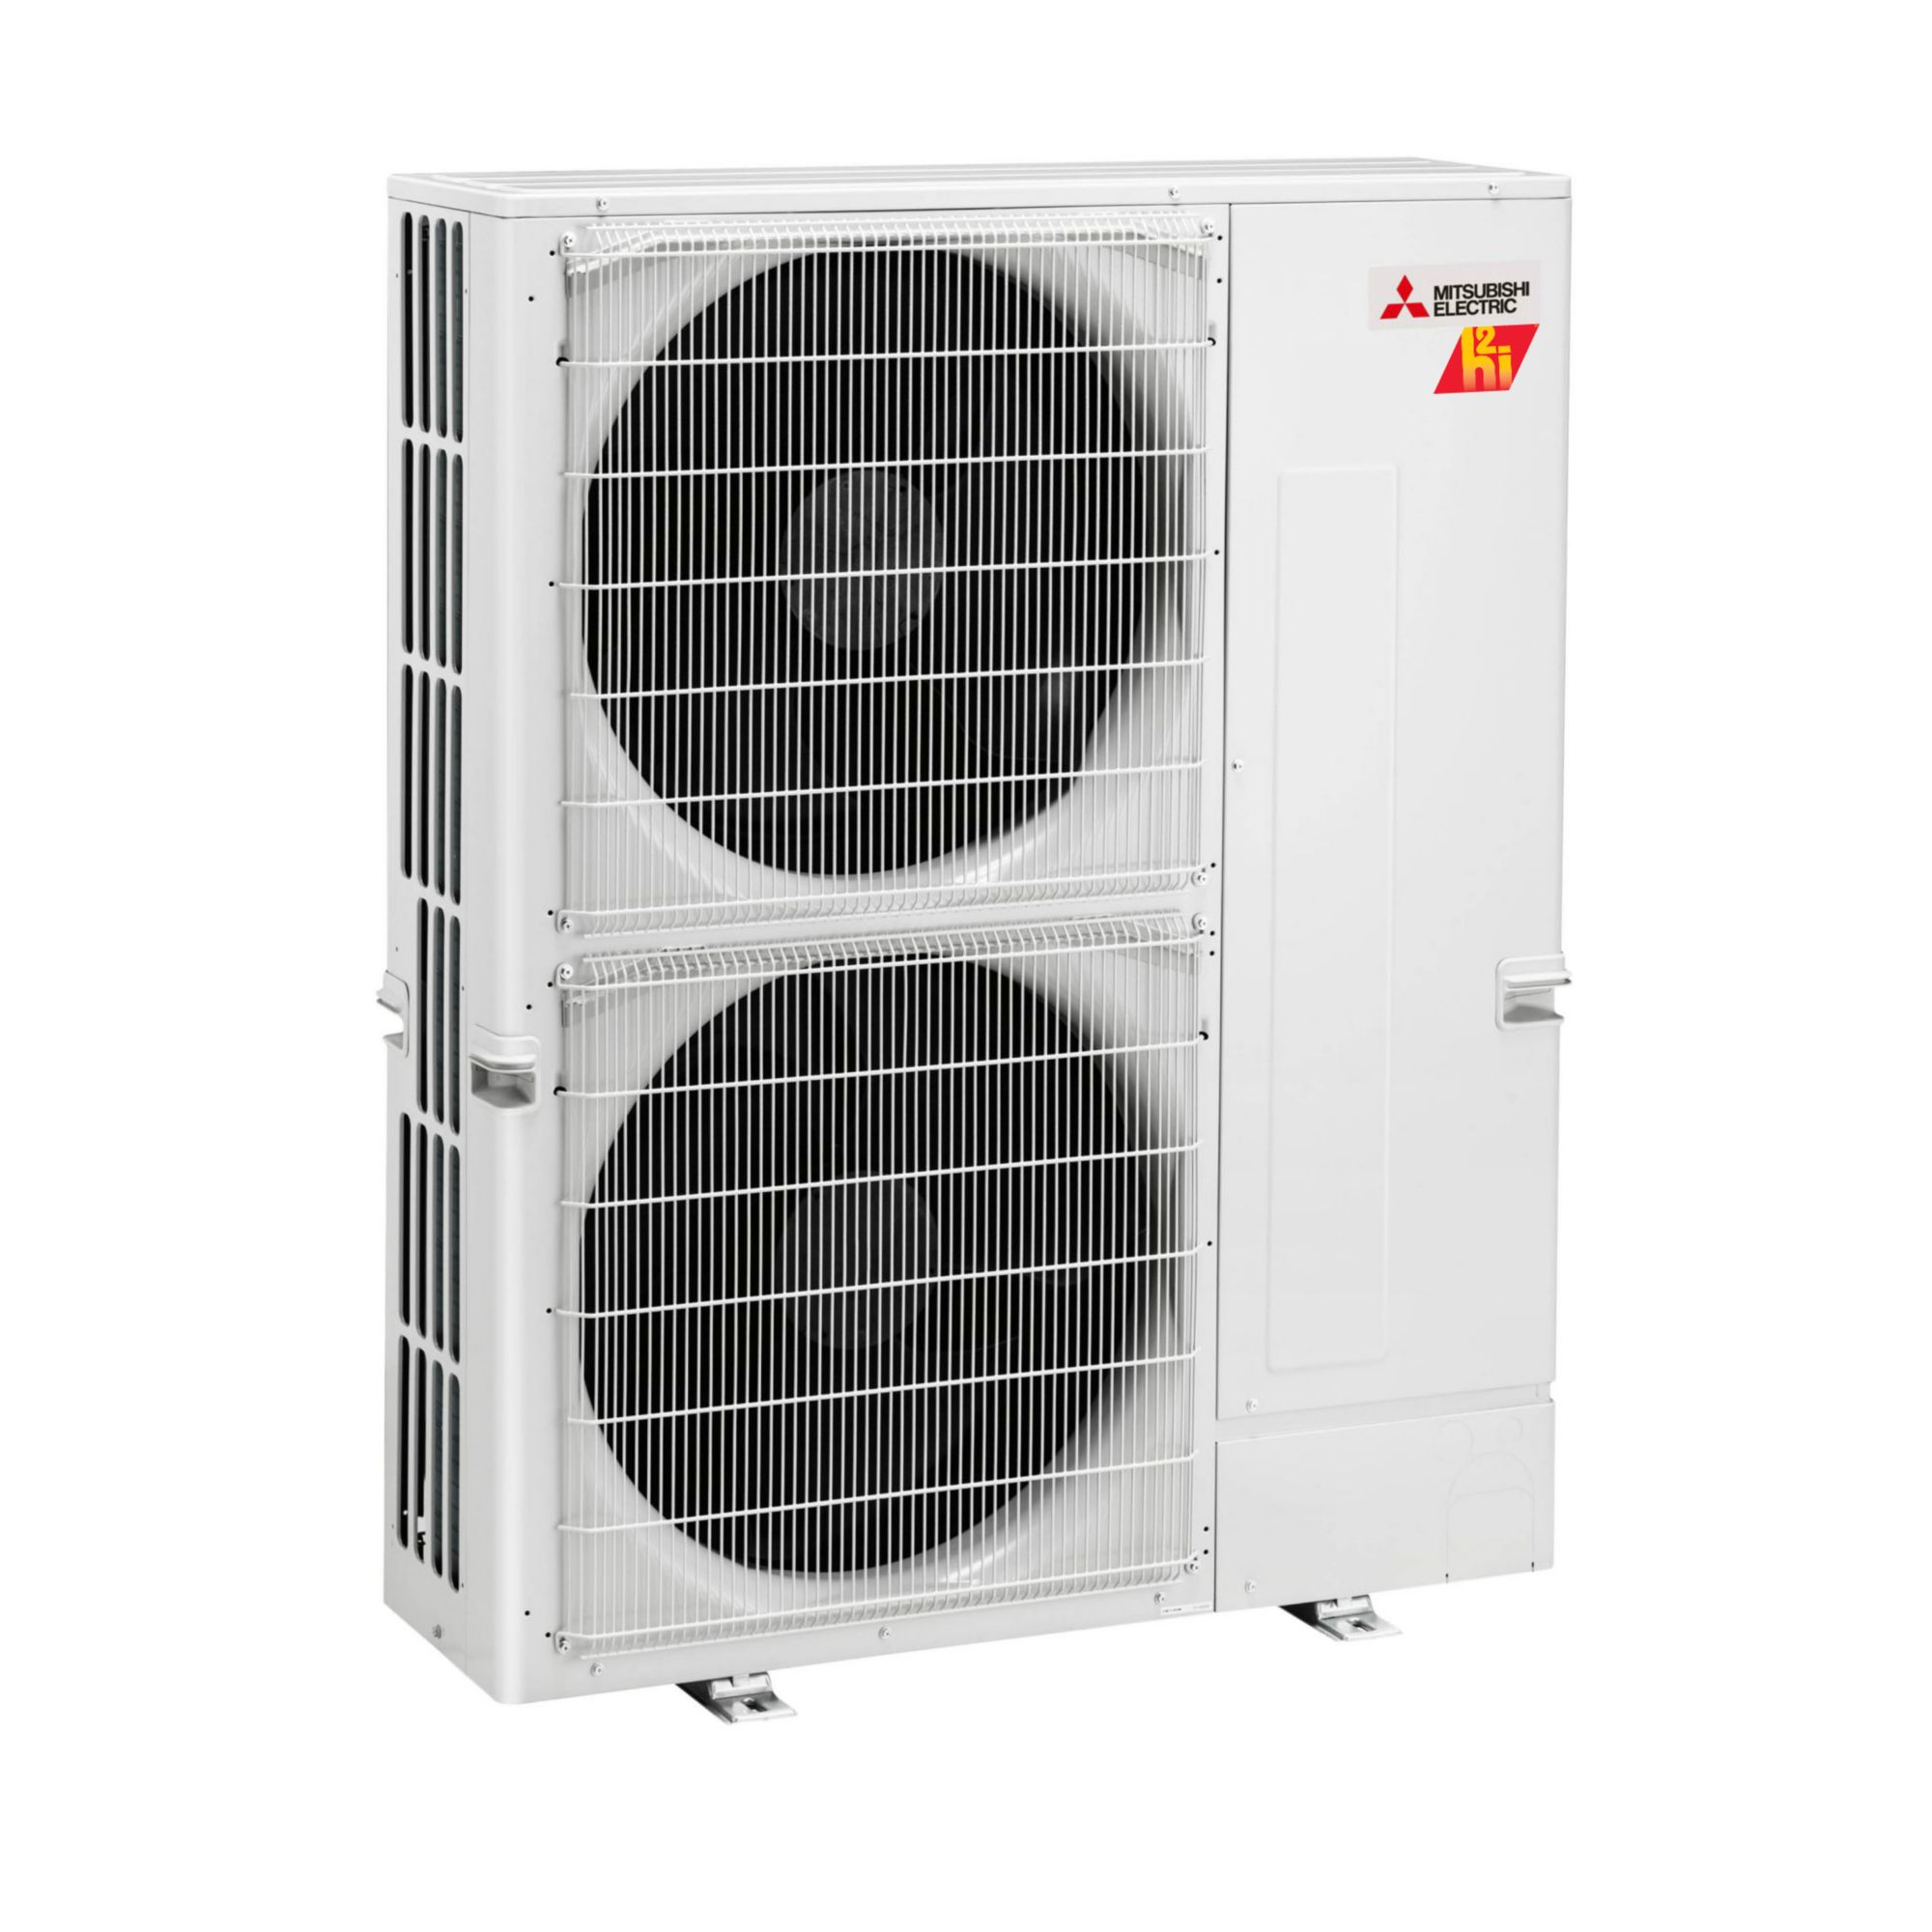 heating ducted air units multi and systems indoor conditioning residential grille mini zone split mxz ductless btu mitsubishi system conditioners